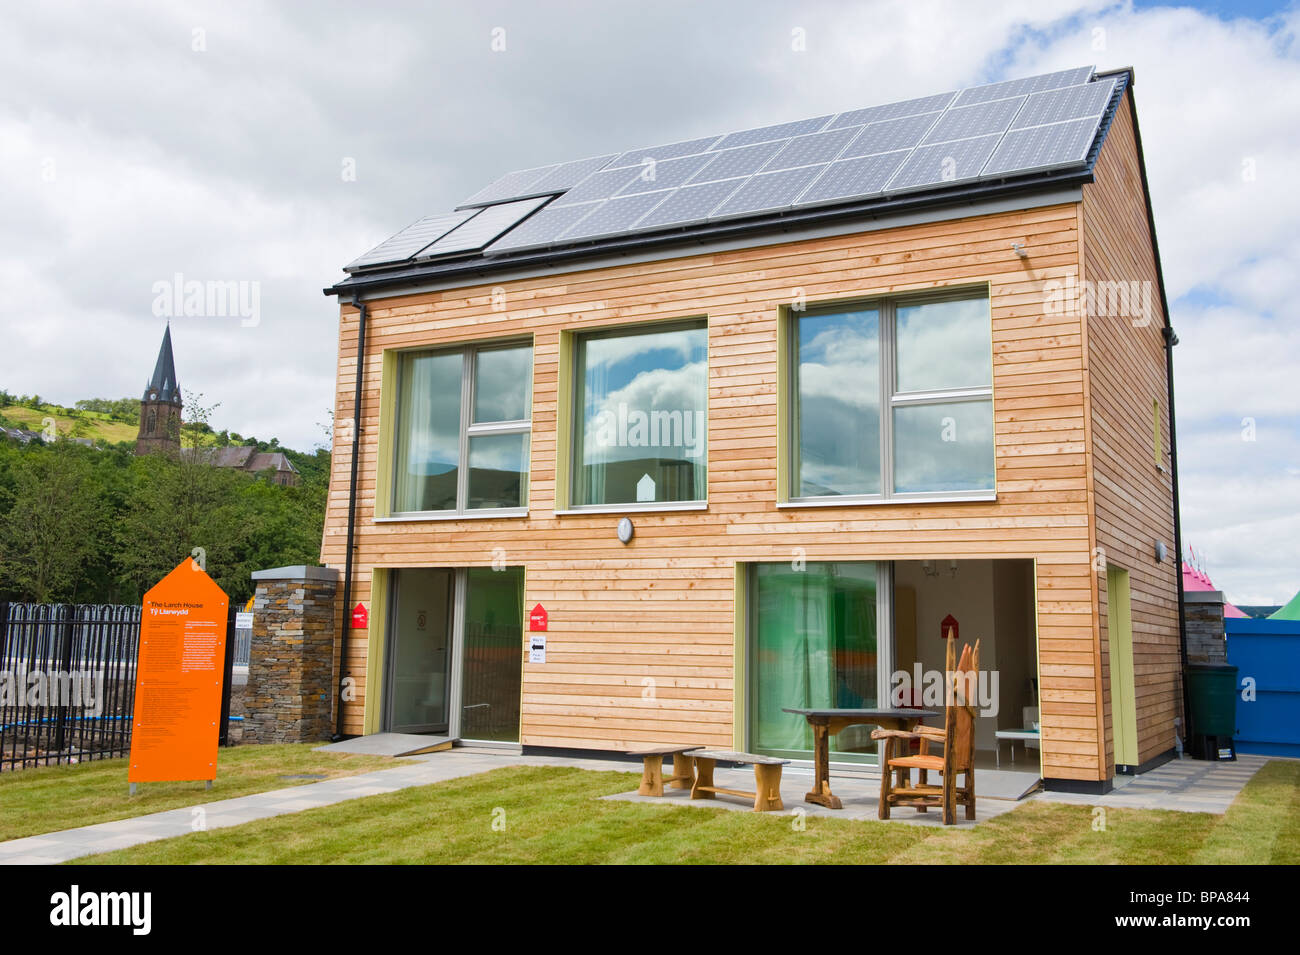 Timber clad zero carbon passive house with triple glazed windows & roof covered with solar panels for electricity Stock Foto